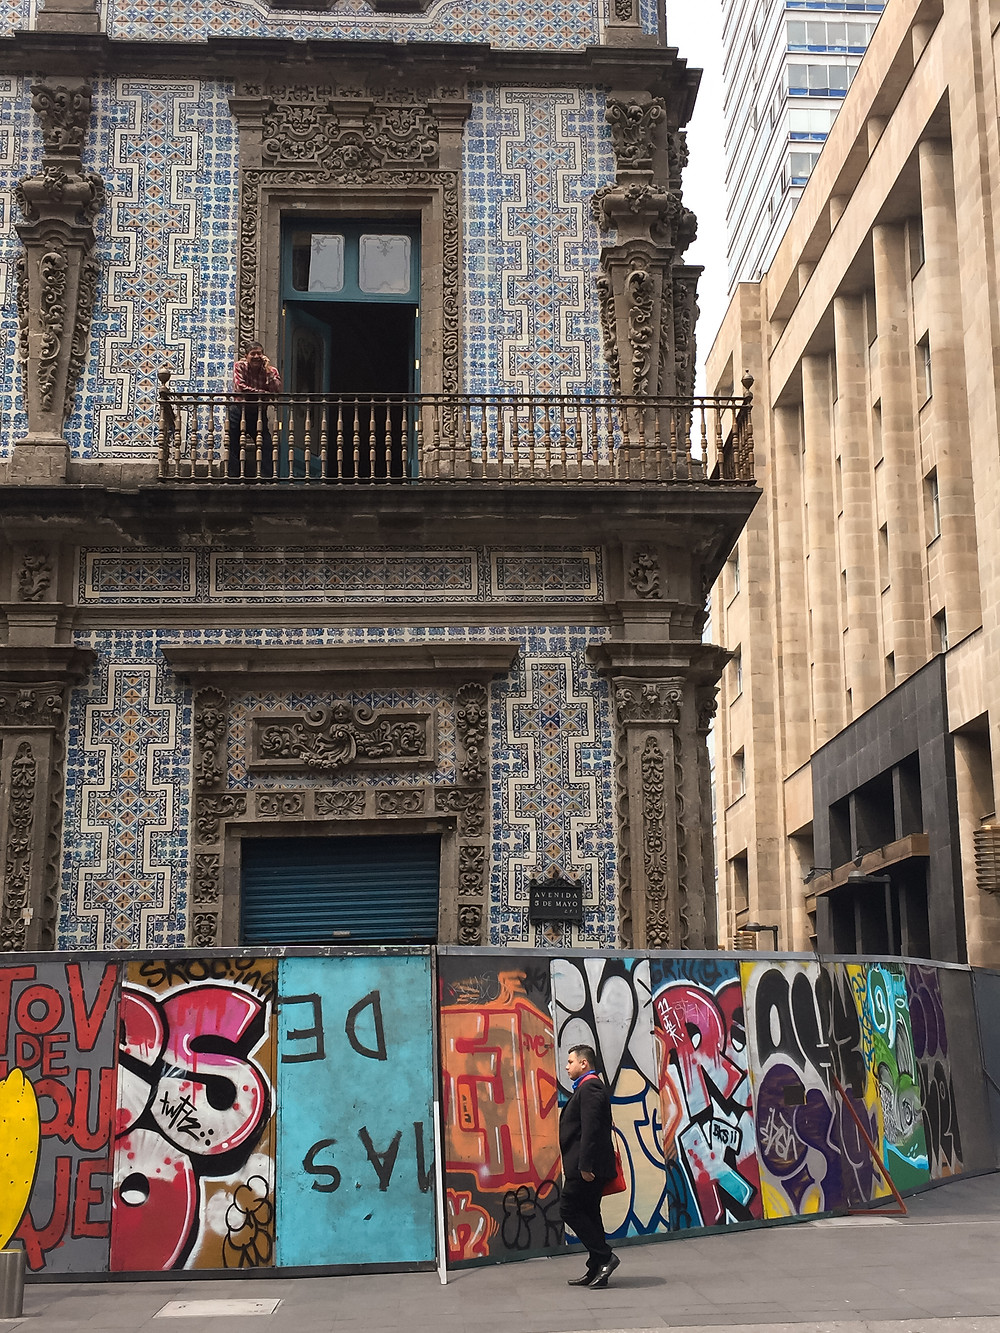 House of Tiles and graffiti covered slants ; Mexico City